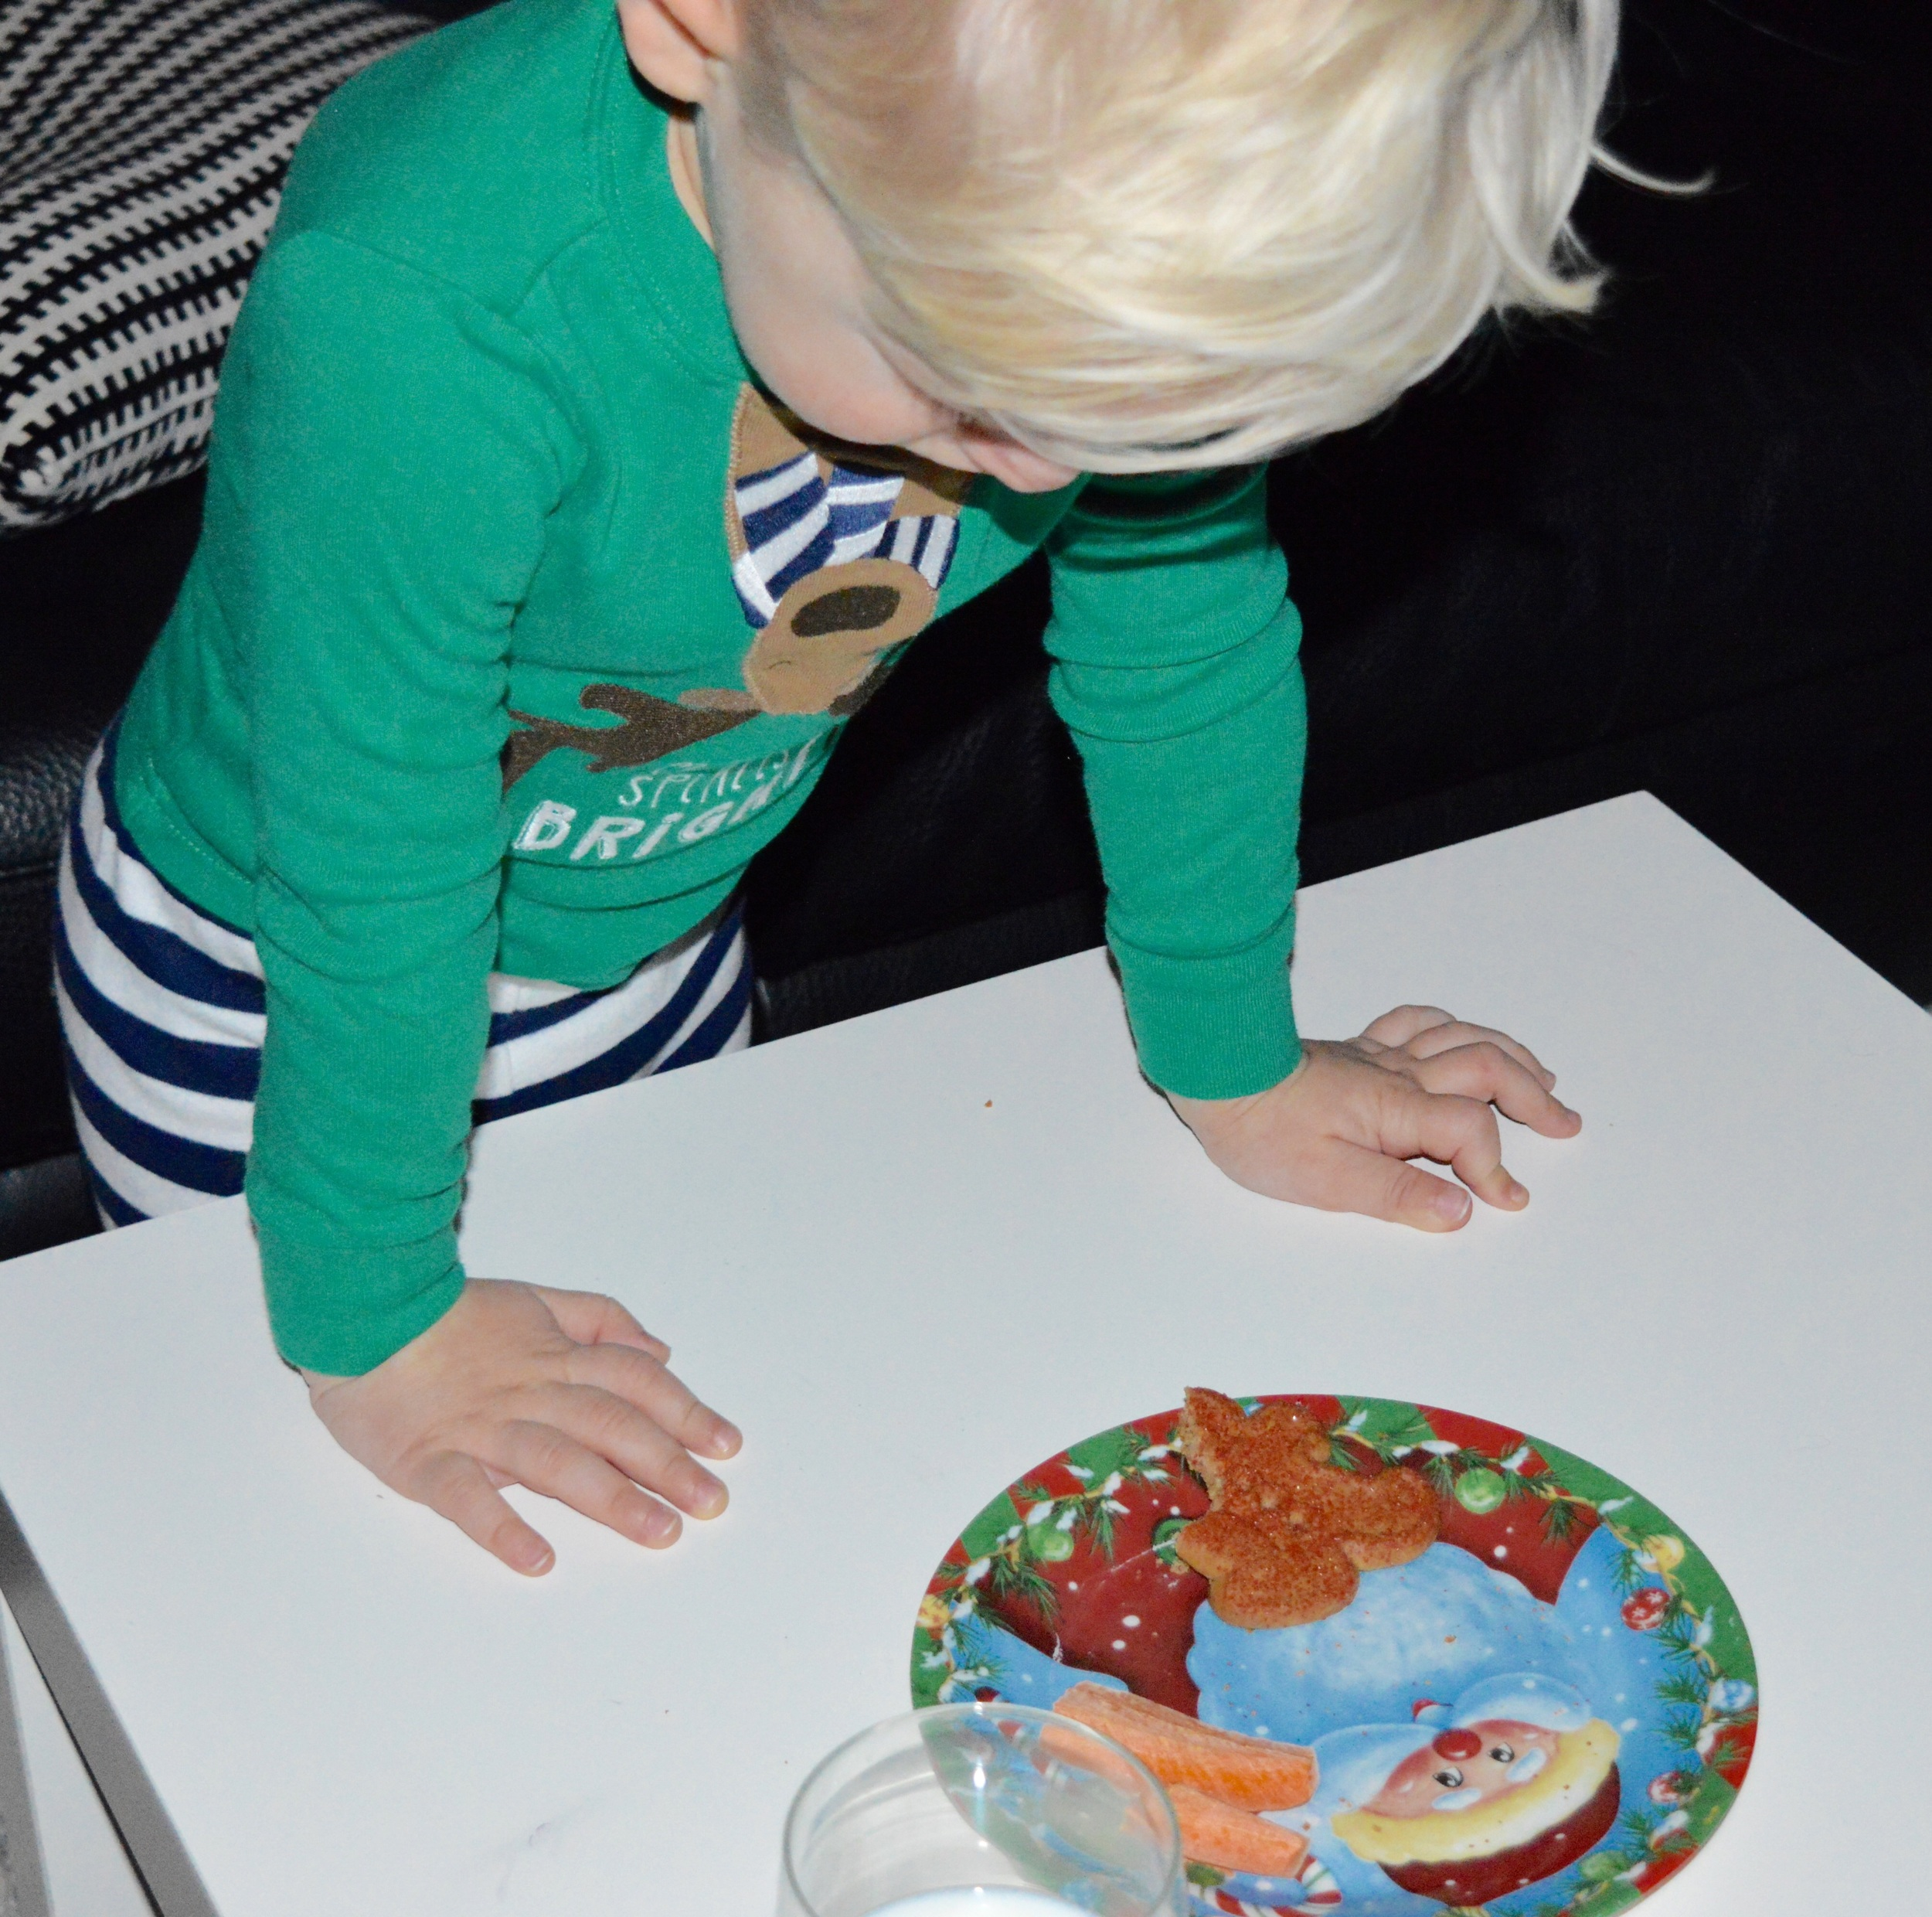 He checked what Santa and the reindeer ended up eating!